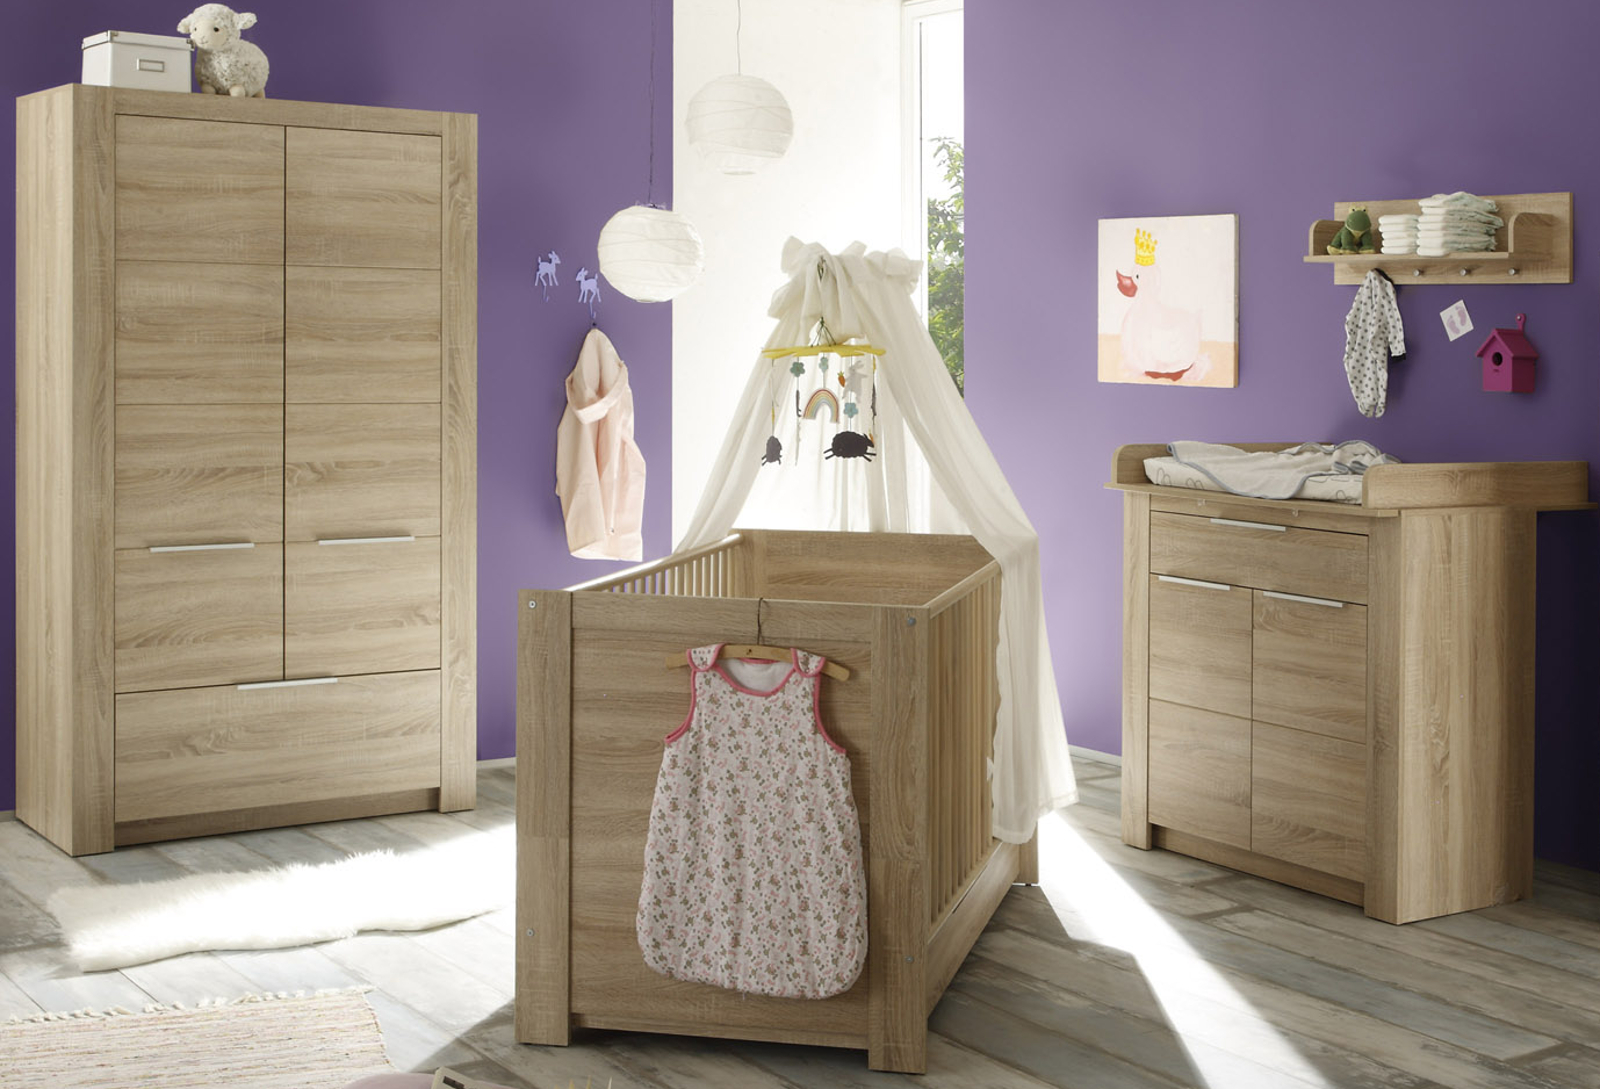 einrichtungsideen kleine kinderzimmer blog. Black Bedroom Furniture Sets. Home Design Ideas